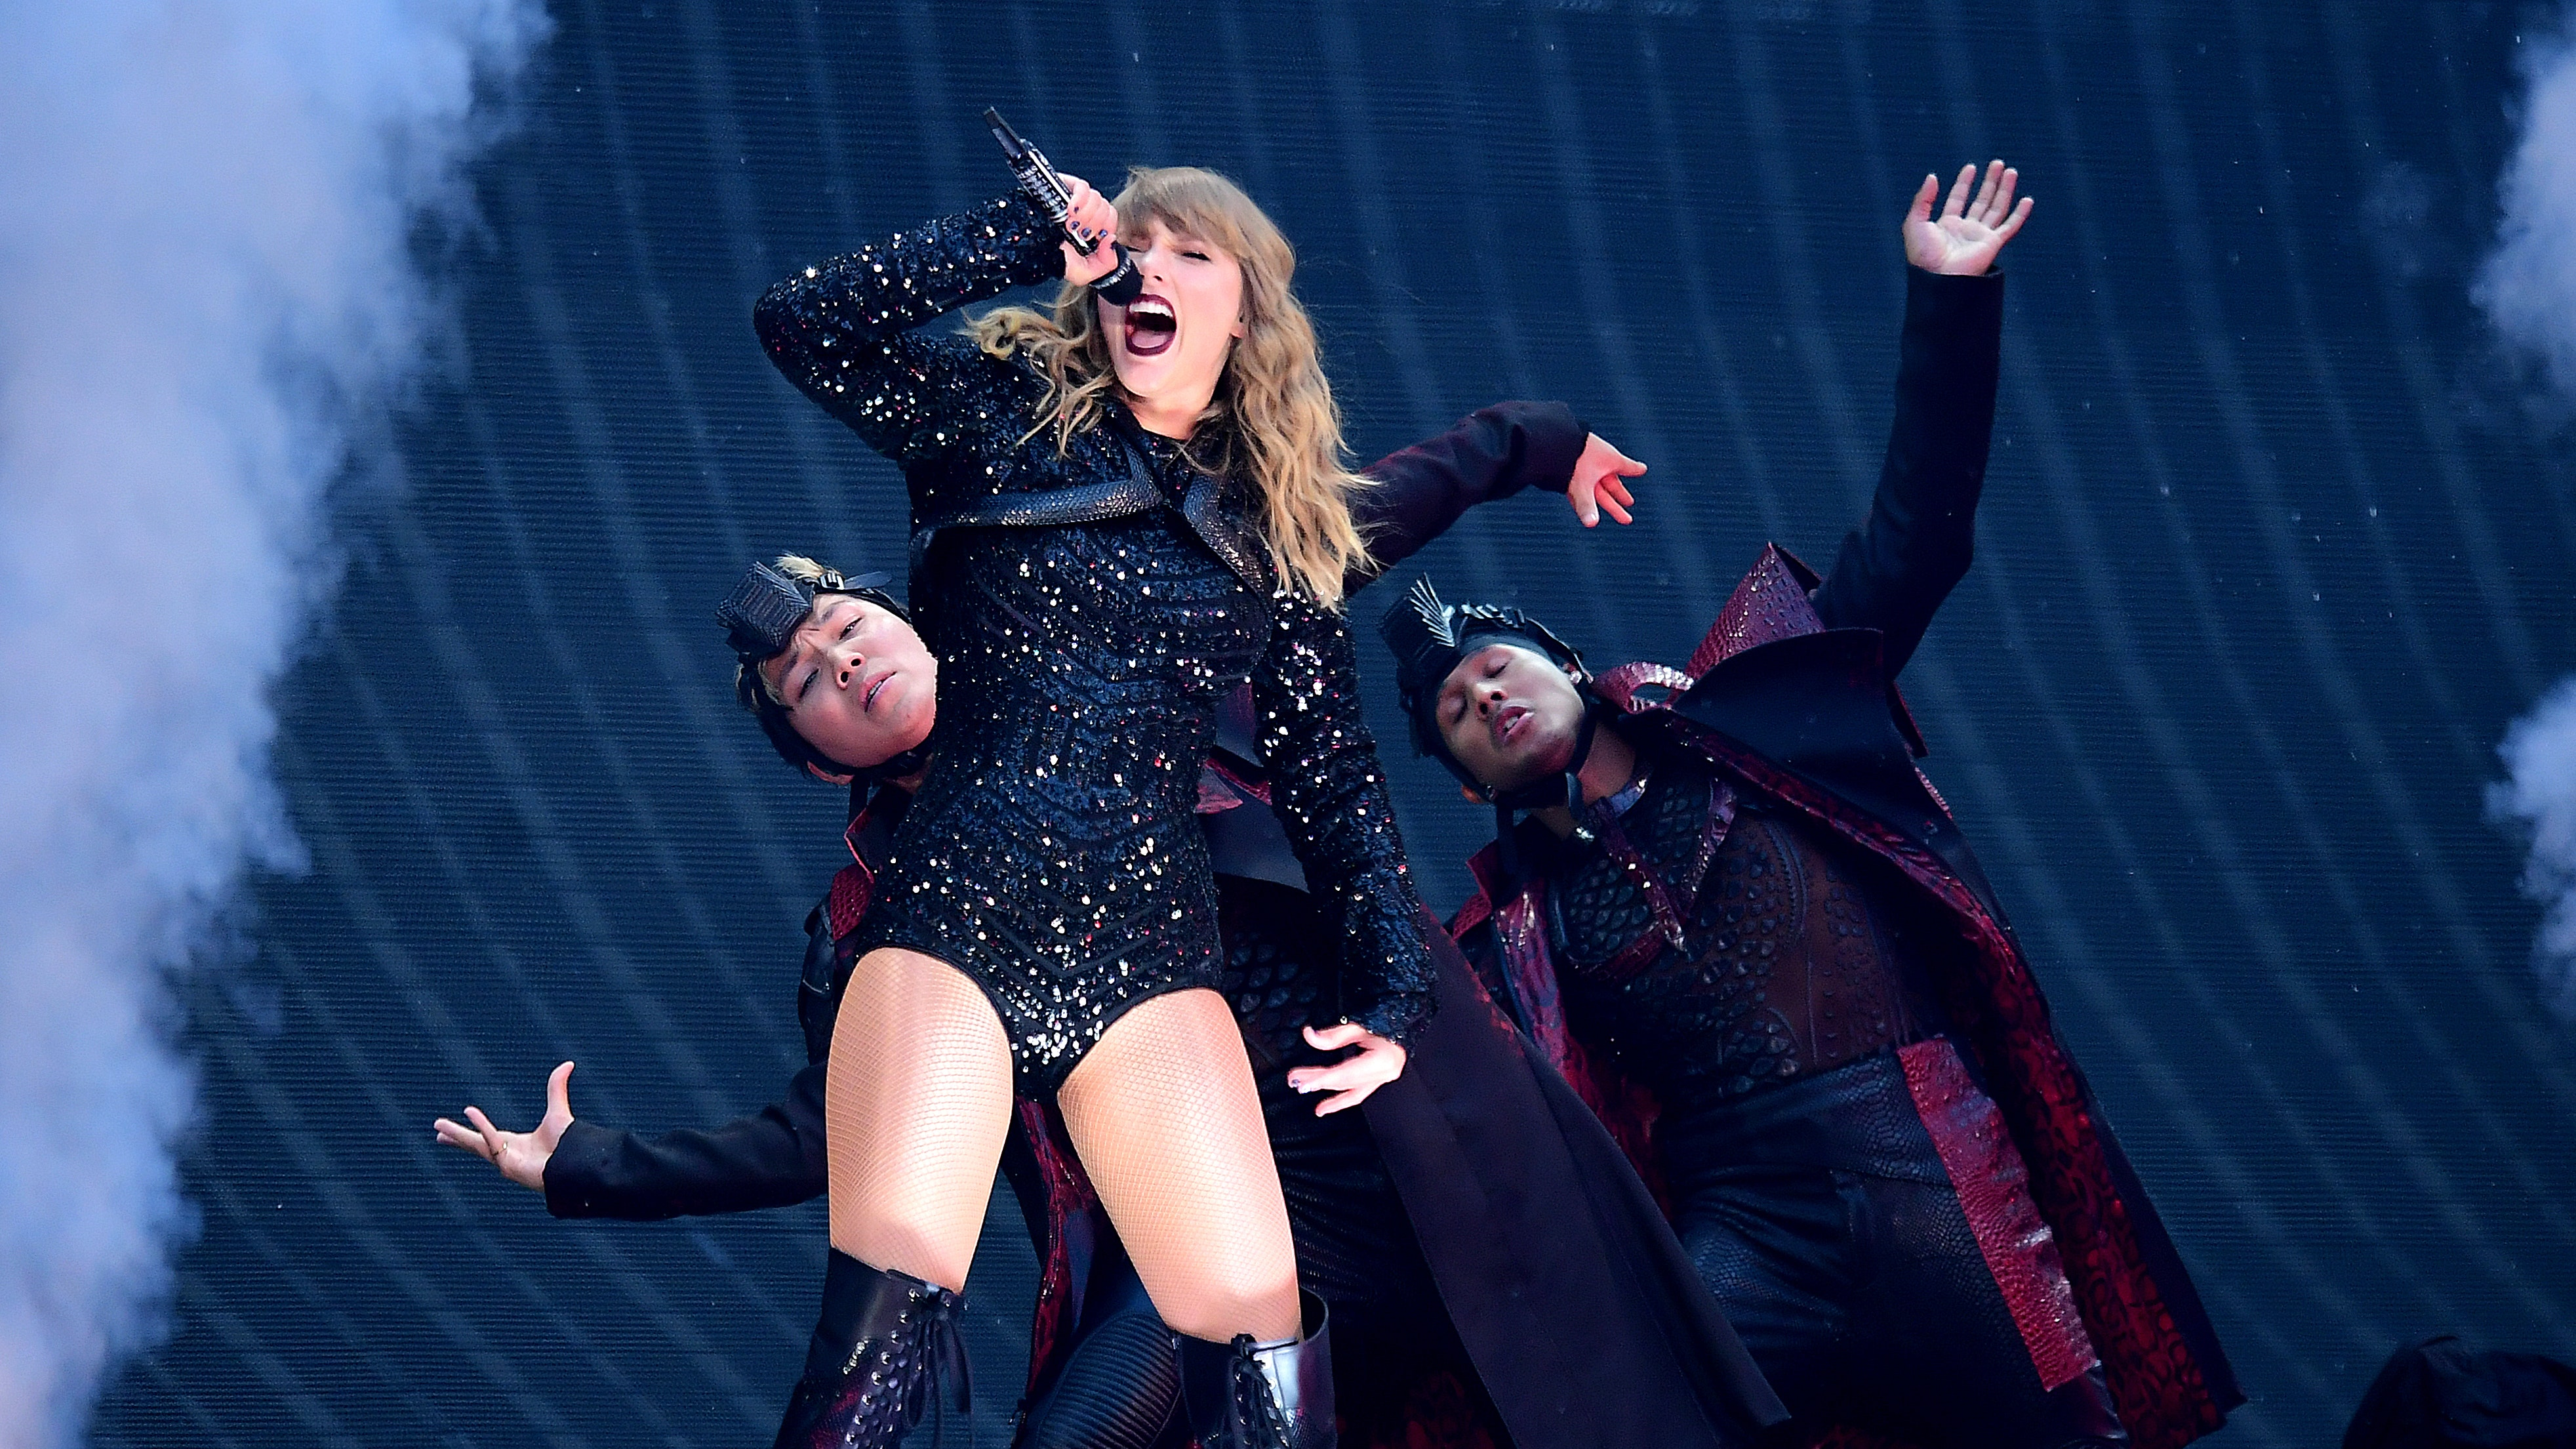 Taylor Swift Sad And Grossed Out After Scooter Braun Acquires Back Catalogue Bt